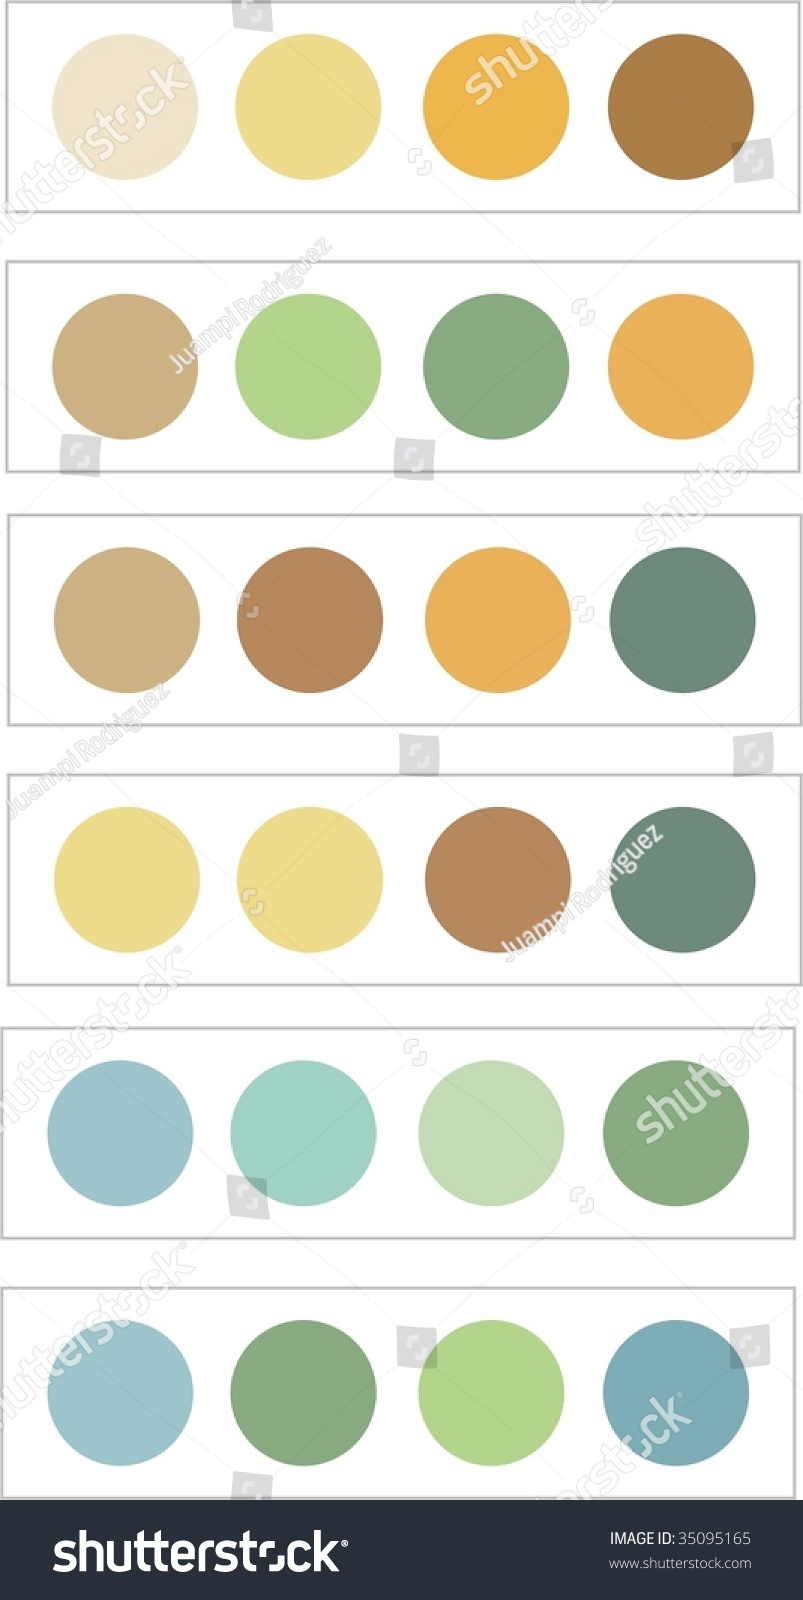 calm color combinations stock vector 35095165 - shutterstock